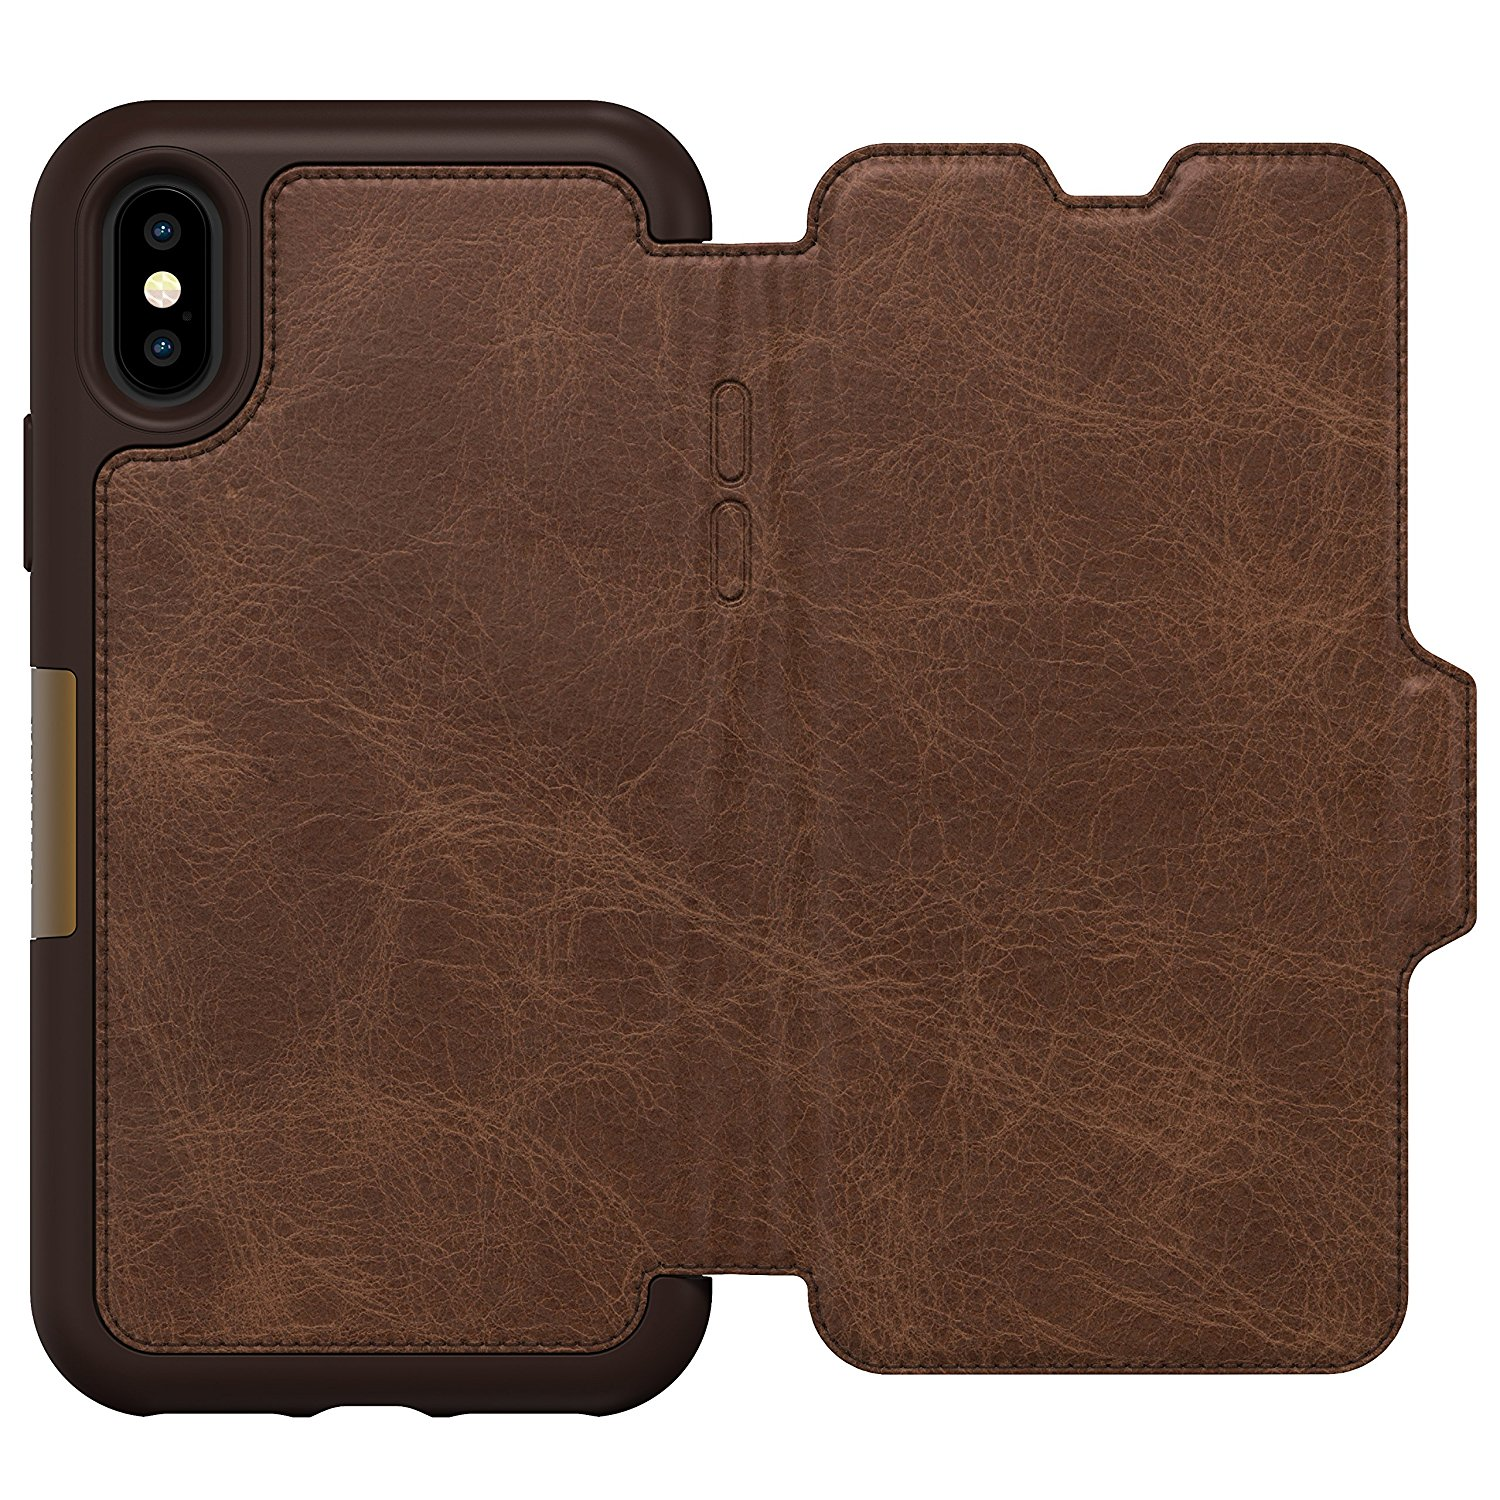 best wallet cases for iphone x - otterbox strada series